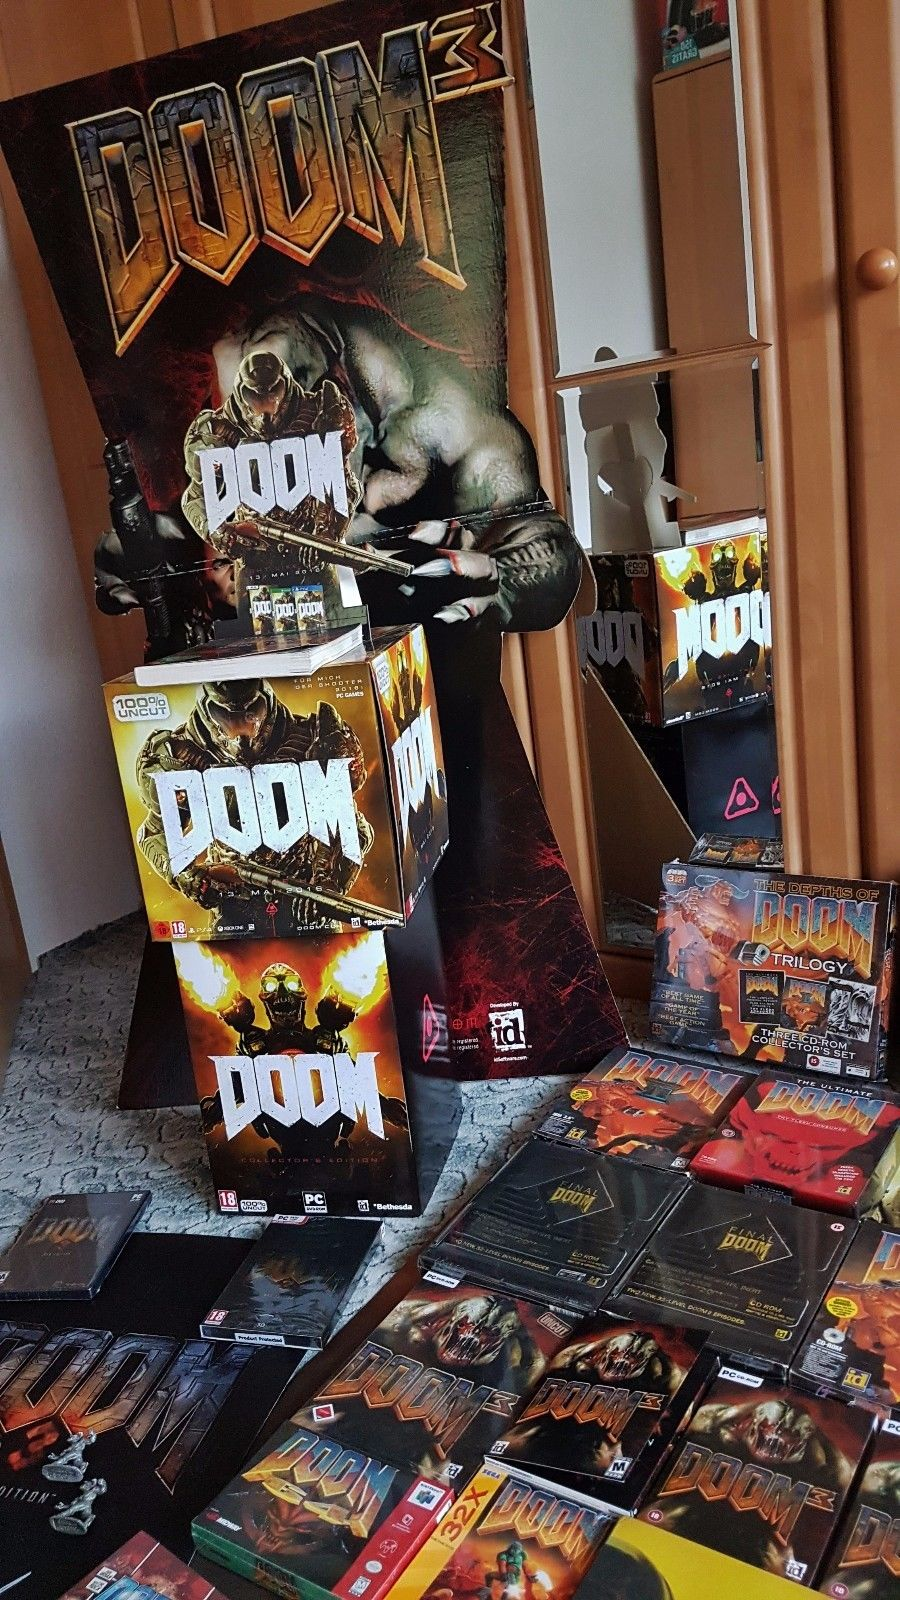 Biggest DOOM Collection in the World Video Game PC Gaming id Software Carmack Romero Hall Petersen McGee Green 5